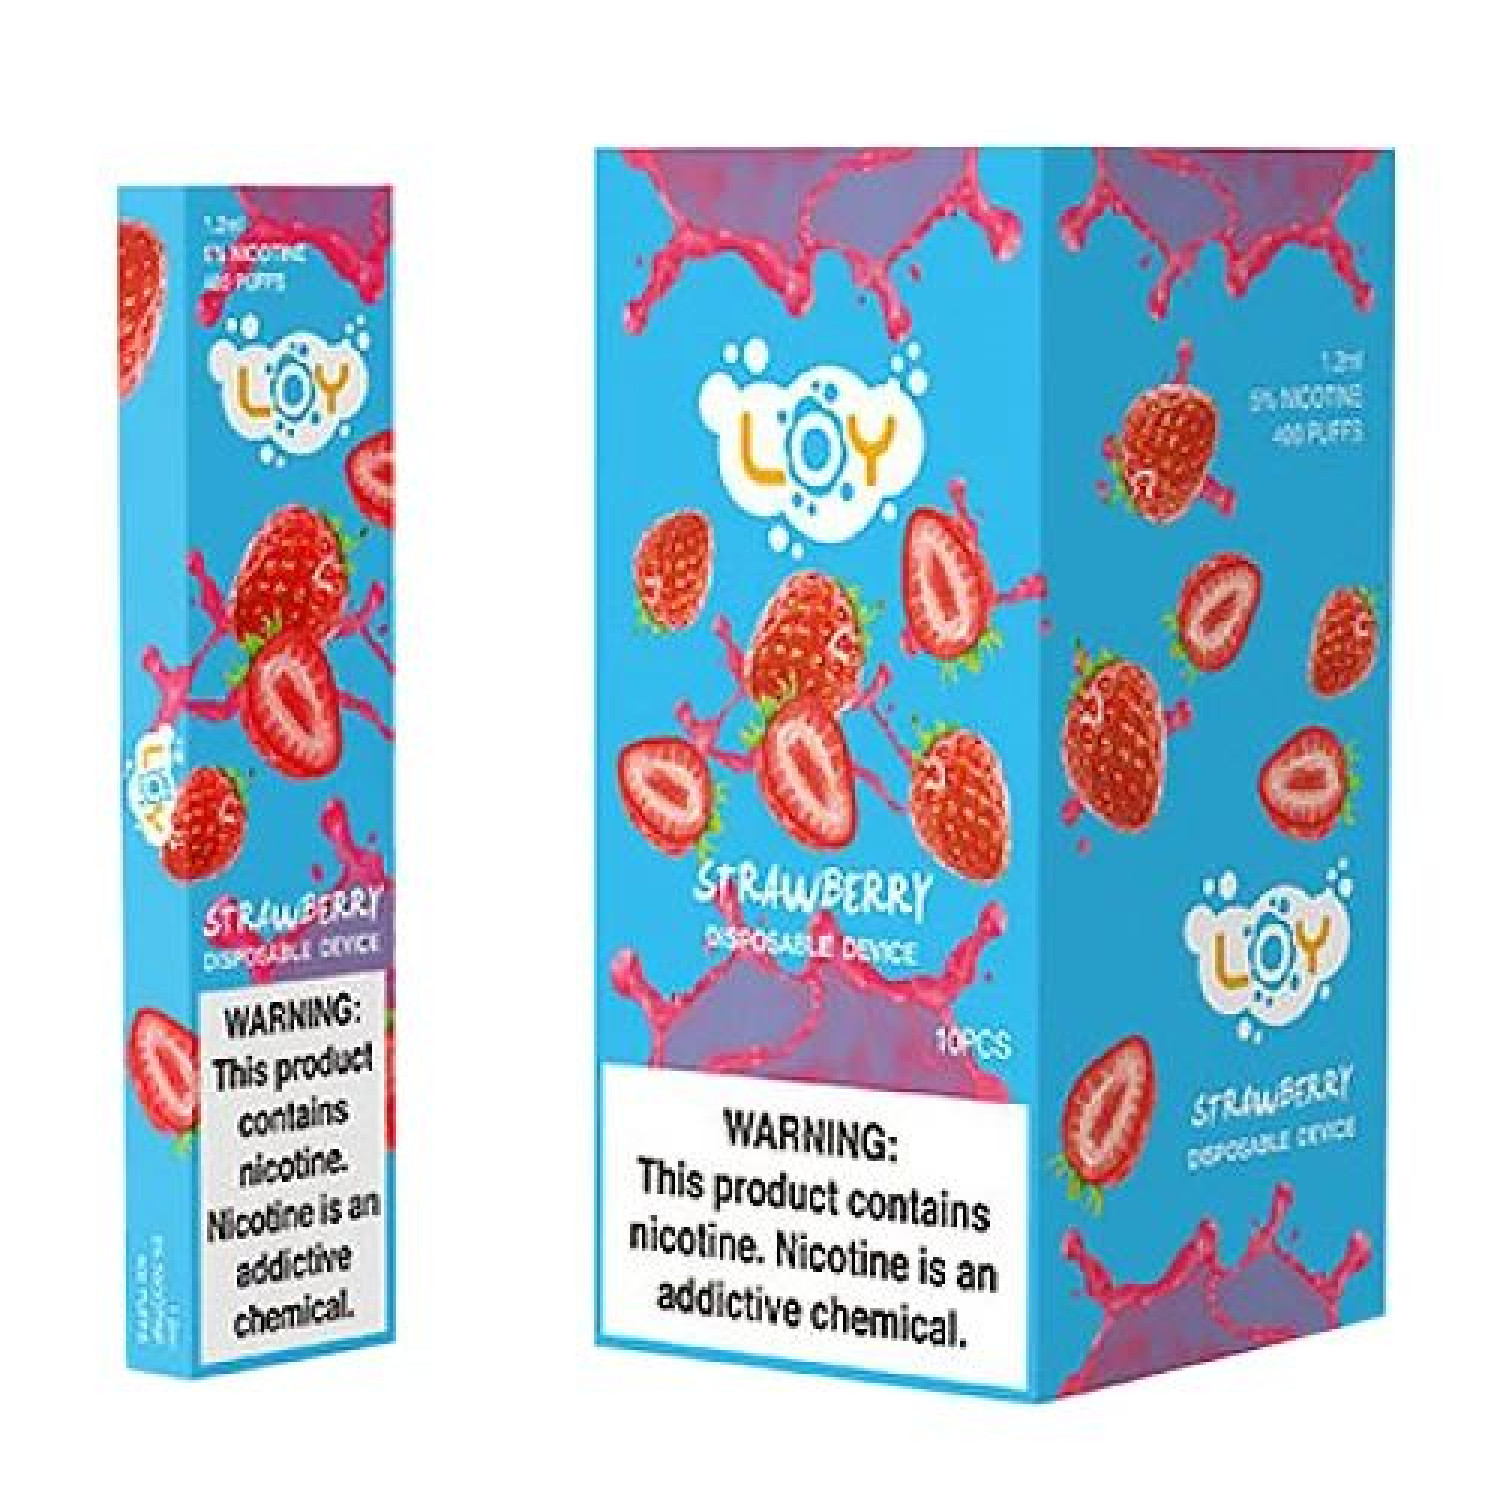 Strawberry Disposable Pod by LOY Infographic